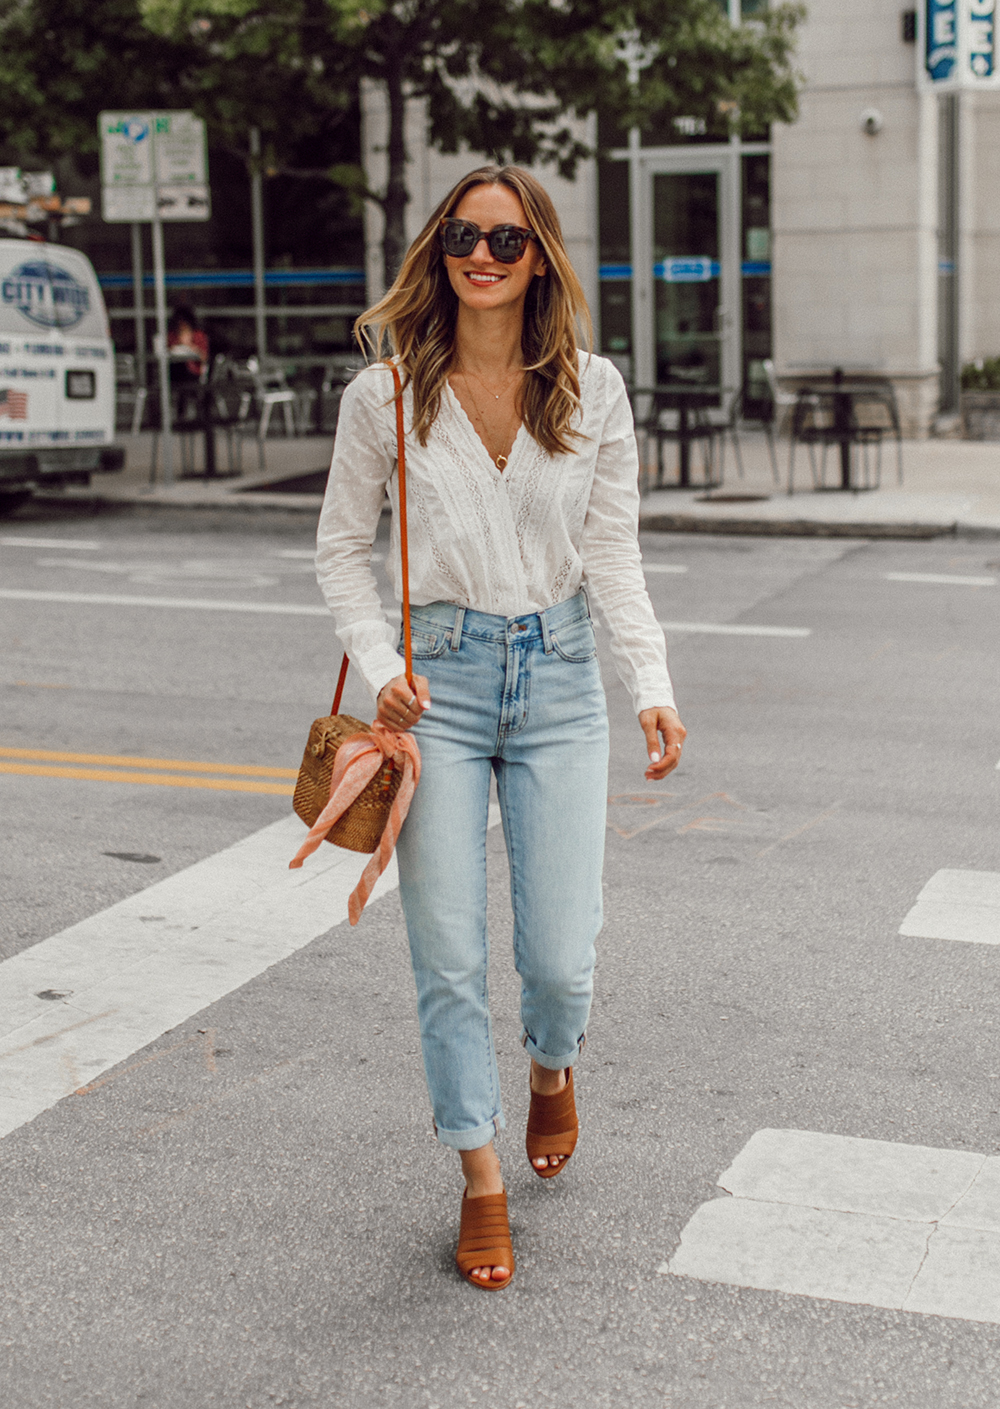 livvland-blog-olivia-watson-austin-texas-fashion-lifestyle-blogger-sezane-lace-deep-v-top-rattan-bag-madewell-summer-jeans-10